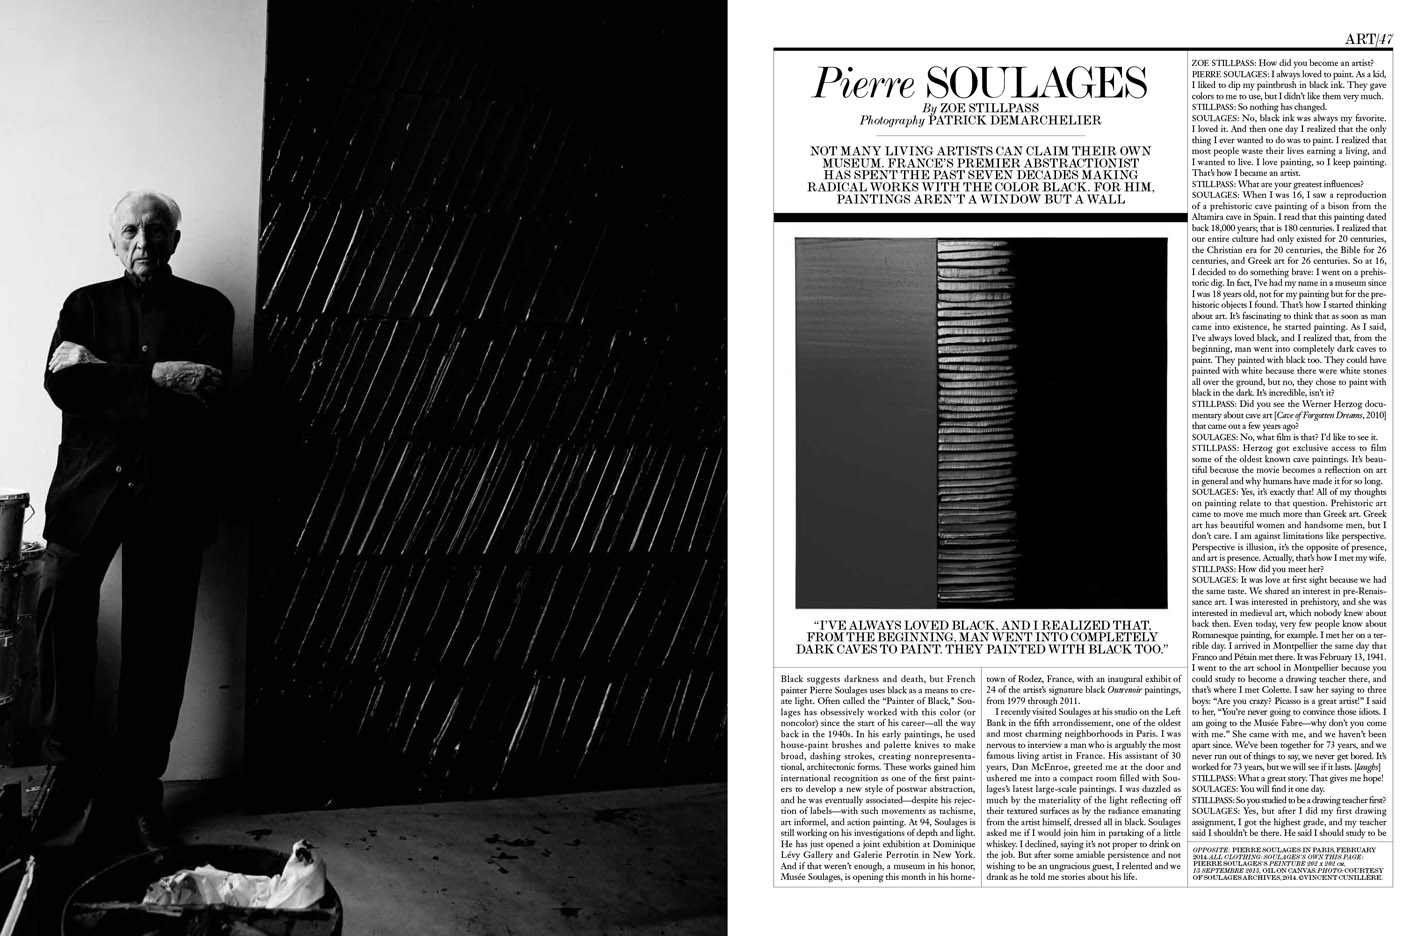 May_PierreSoulages_Demarchelier.jpg